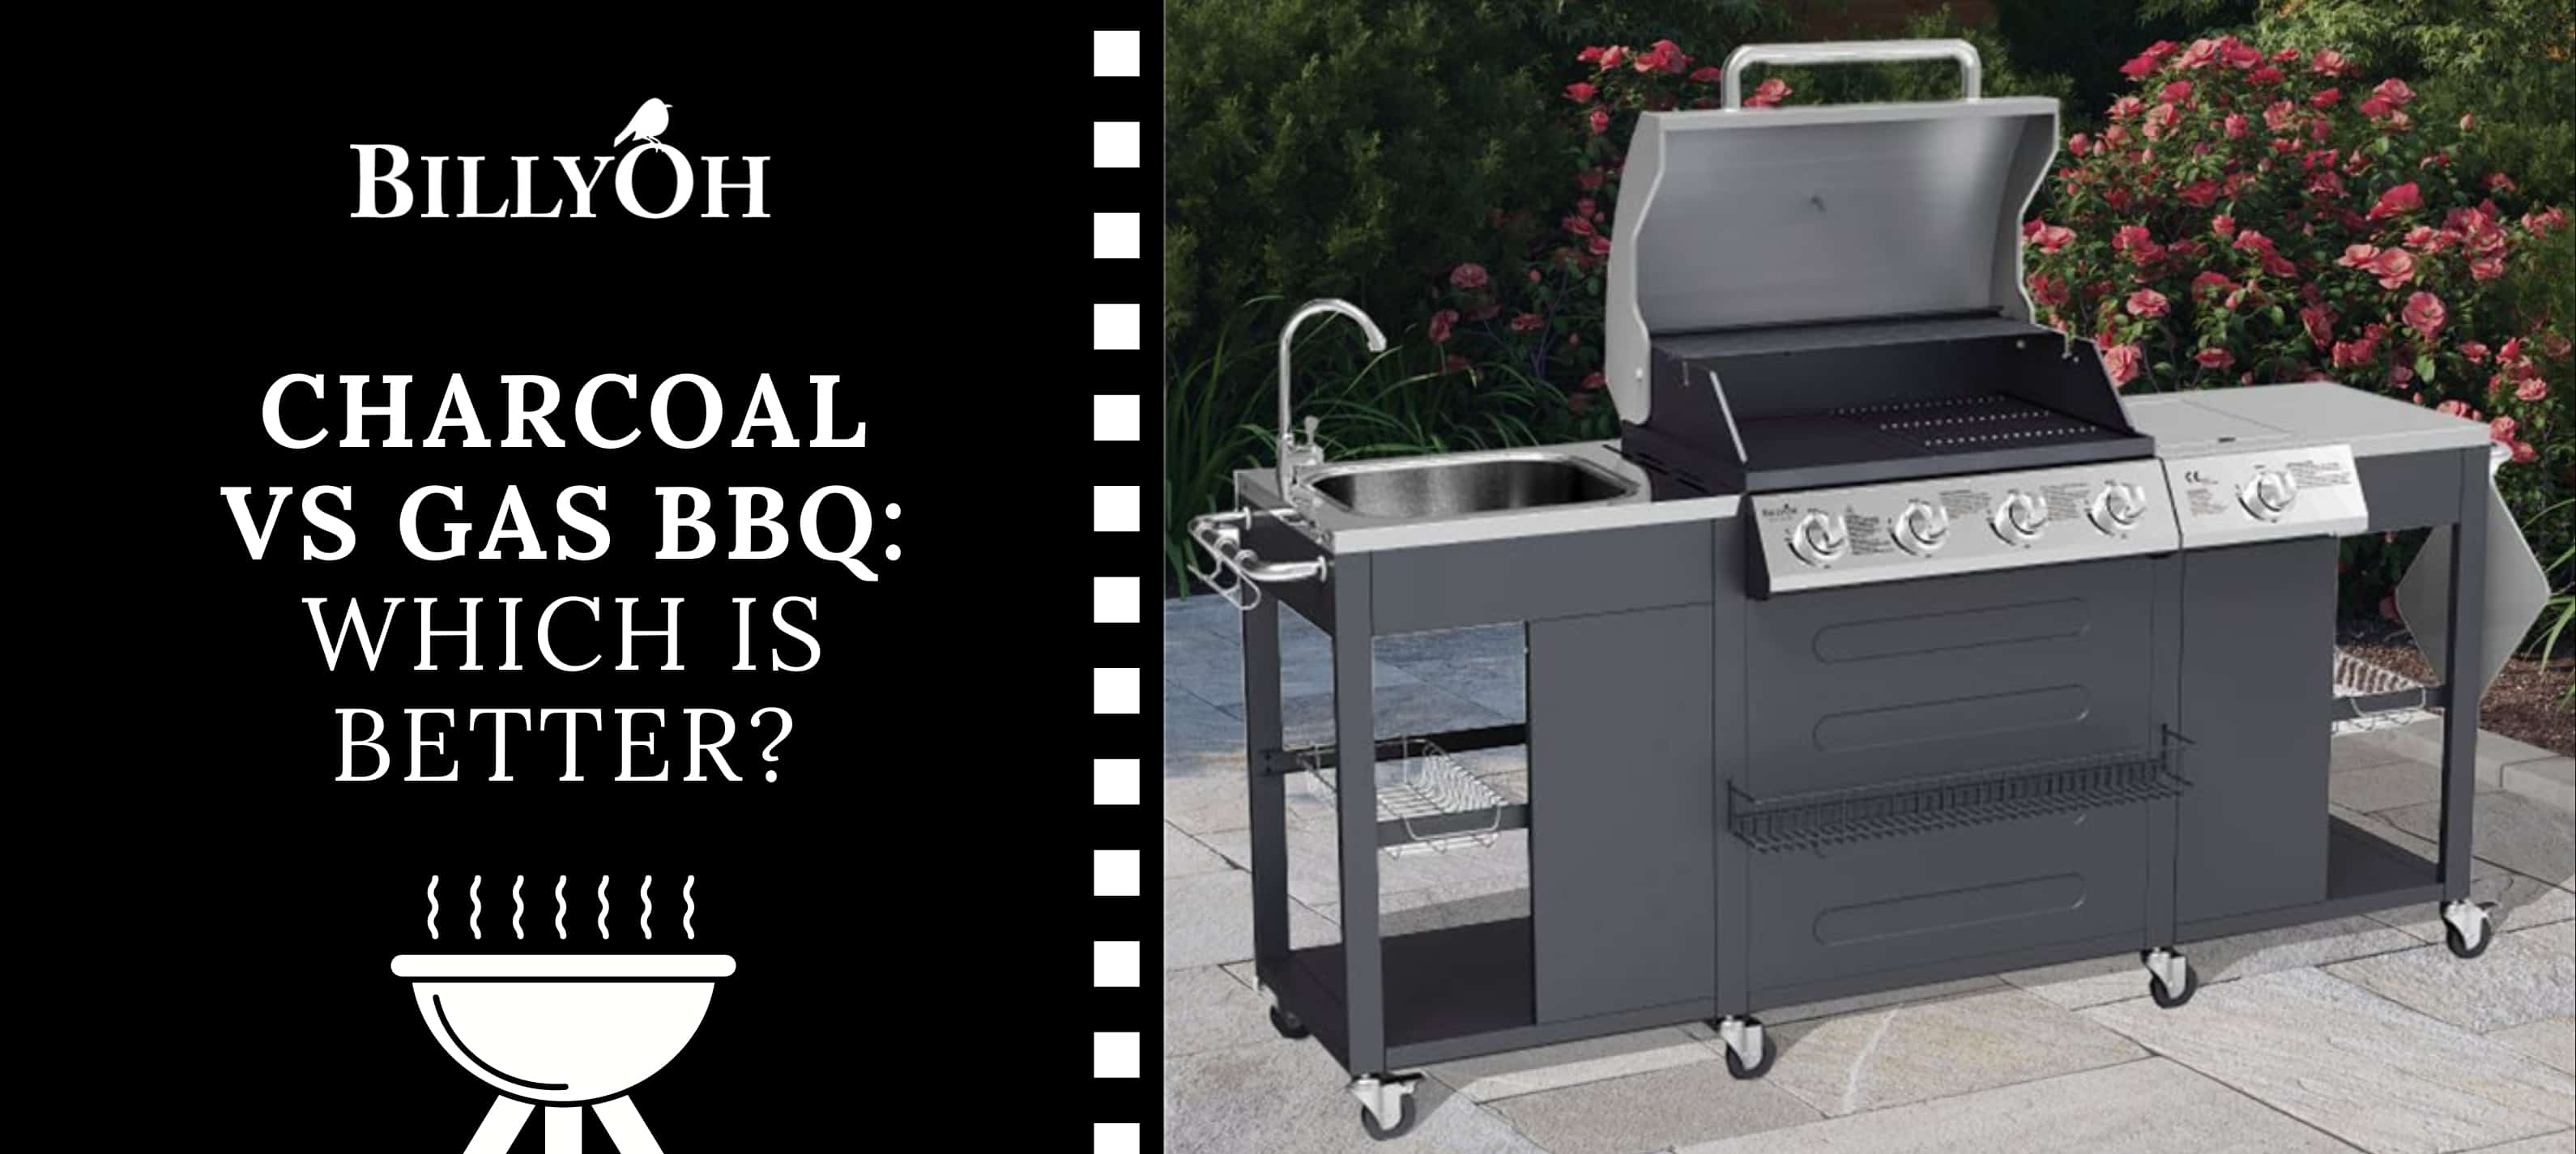 BillyOh Alabama Gas BBQ with 'Charcoal vs Gas BBQ ' banner with BillyOh logo